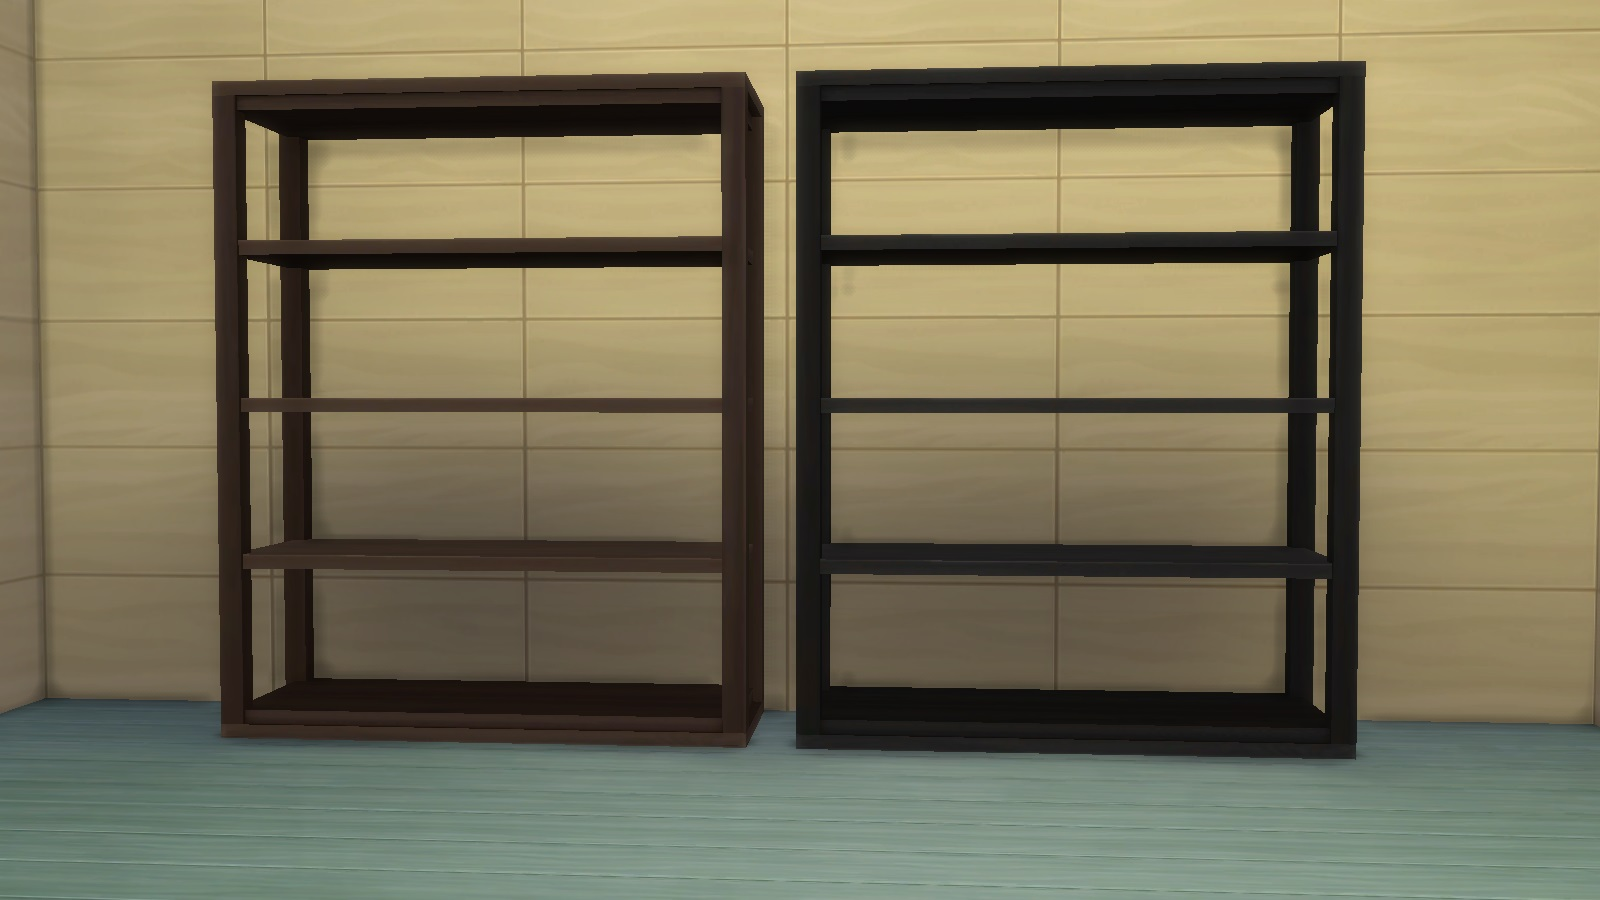 My Sims 4 Blog Simplicity Collectible Shelf Maxis Match